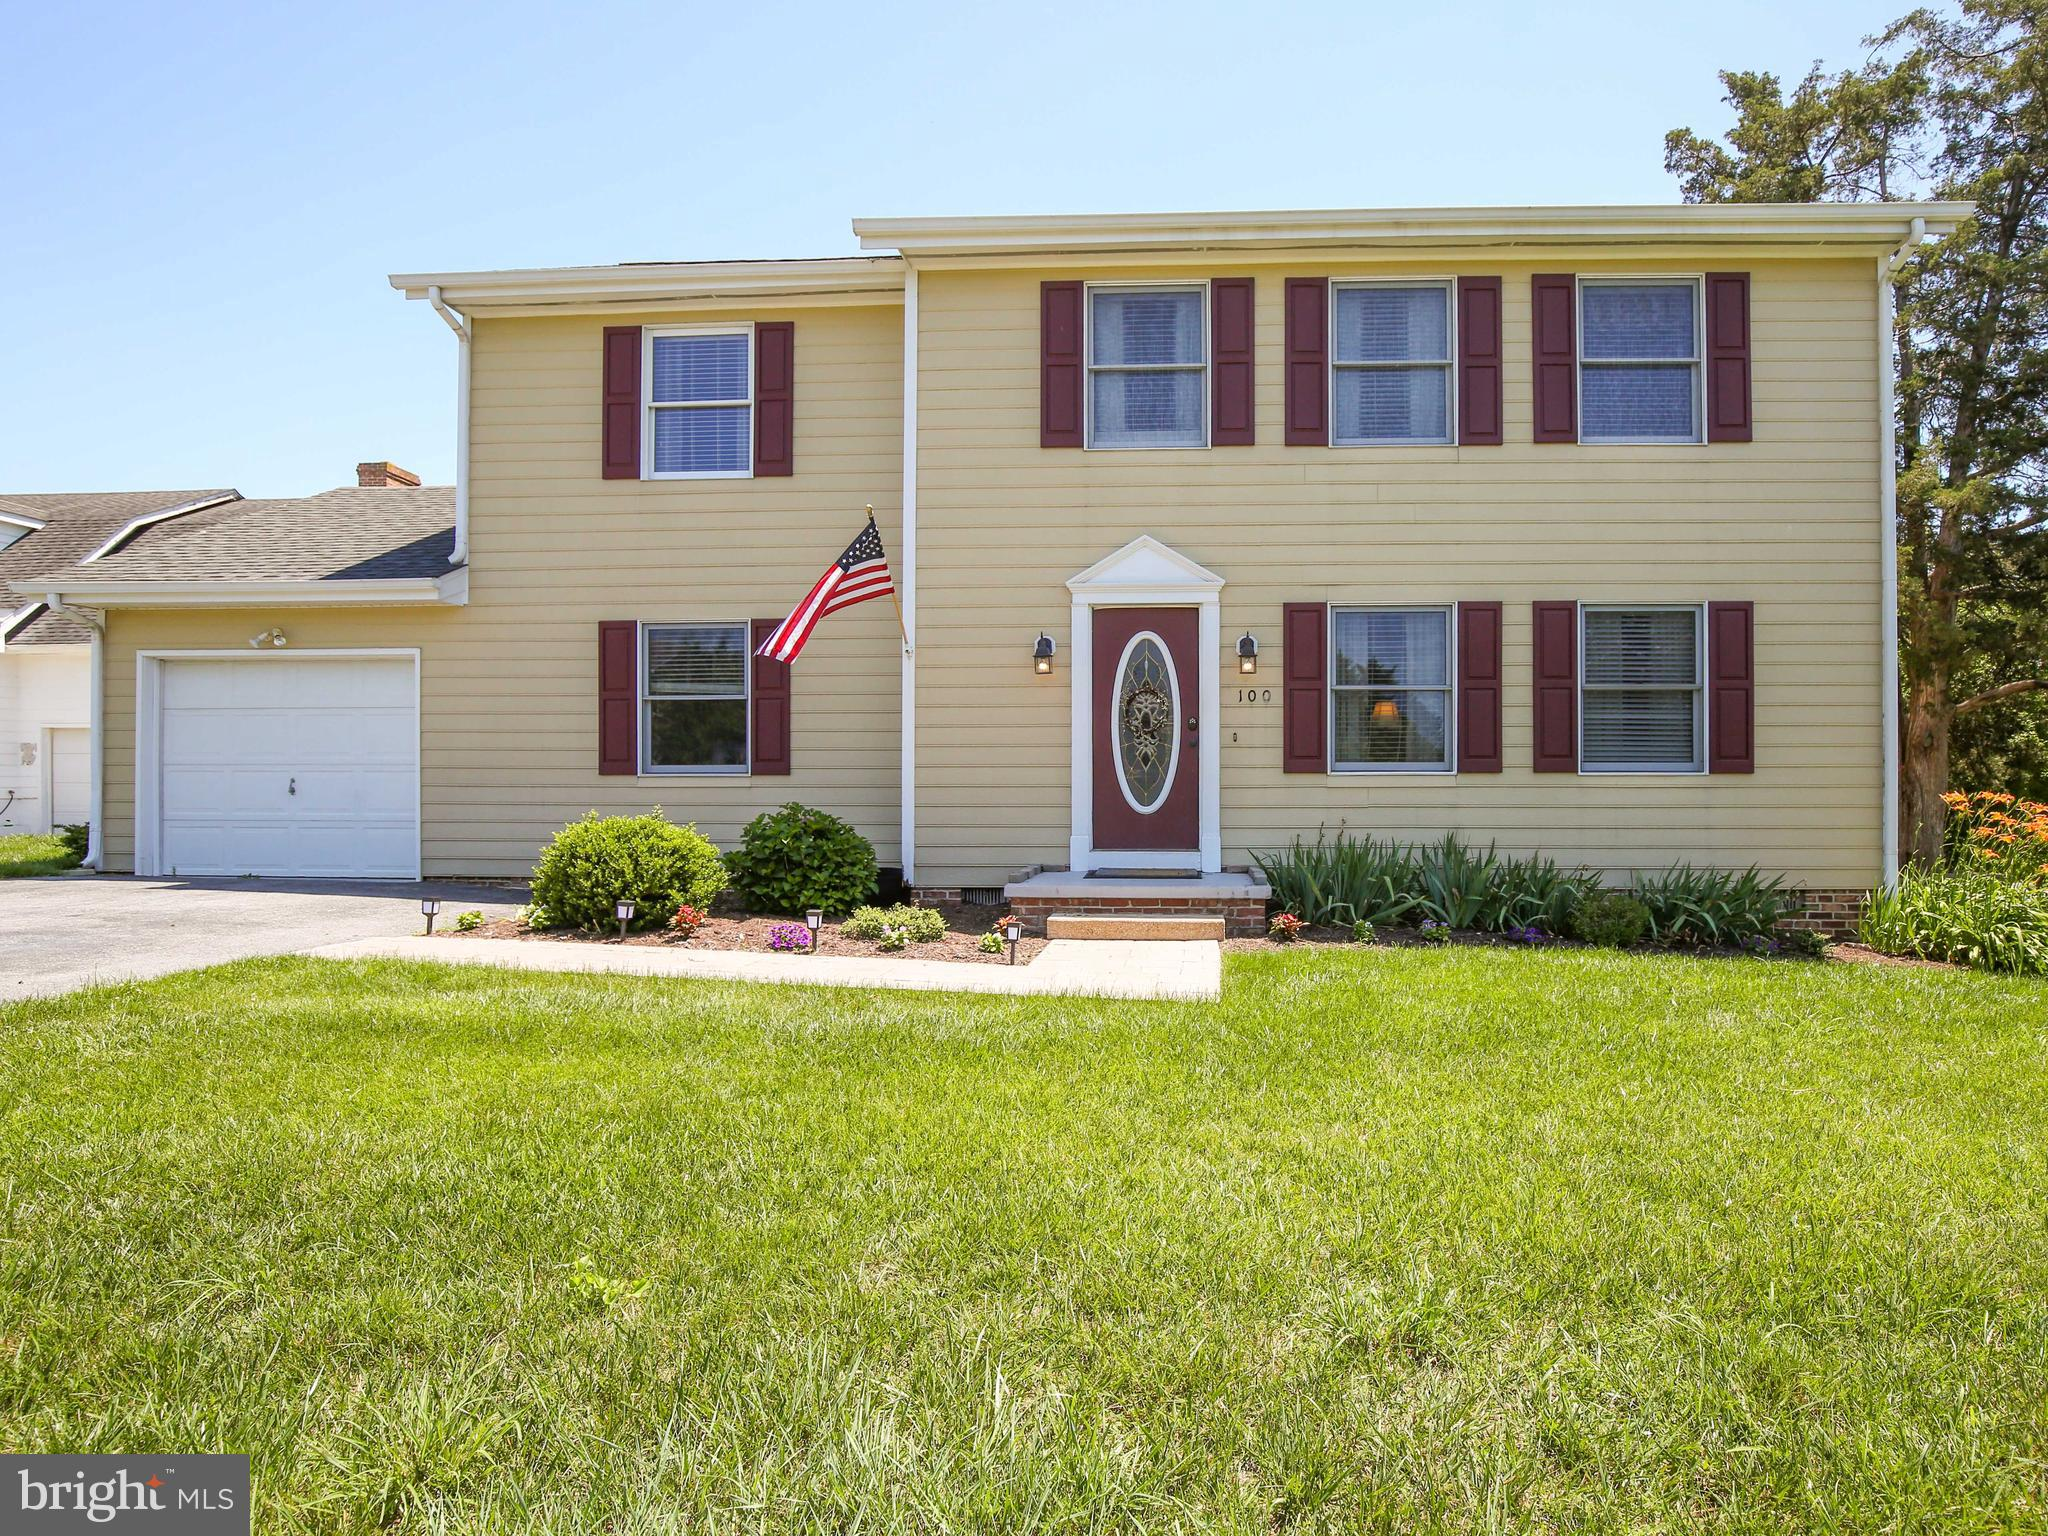 EAST SIDE!  4 Bedroom, 2 1/2 Bath Colonial on large corner lot. Great home for commuters ! Nicely ma